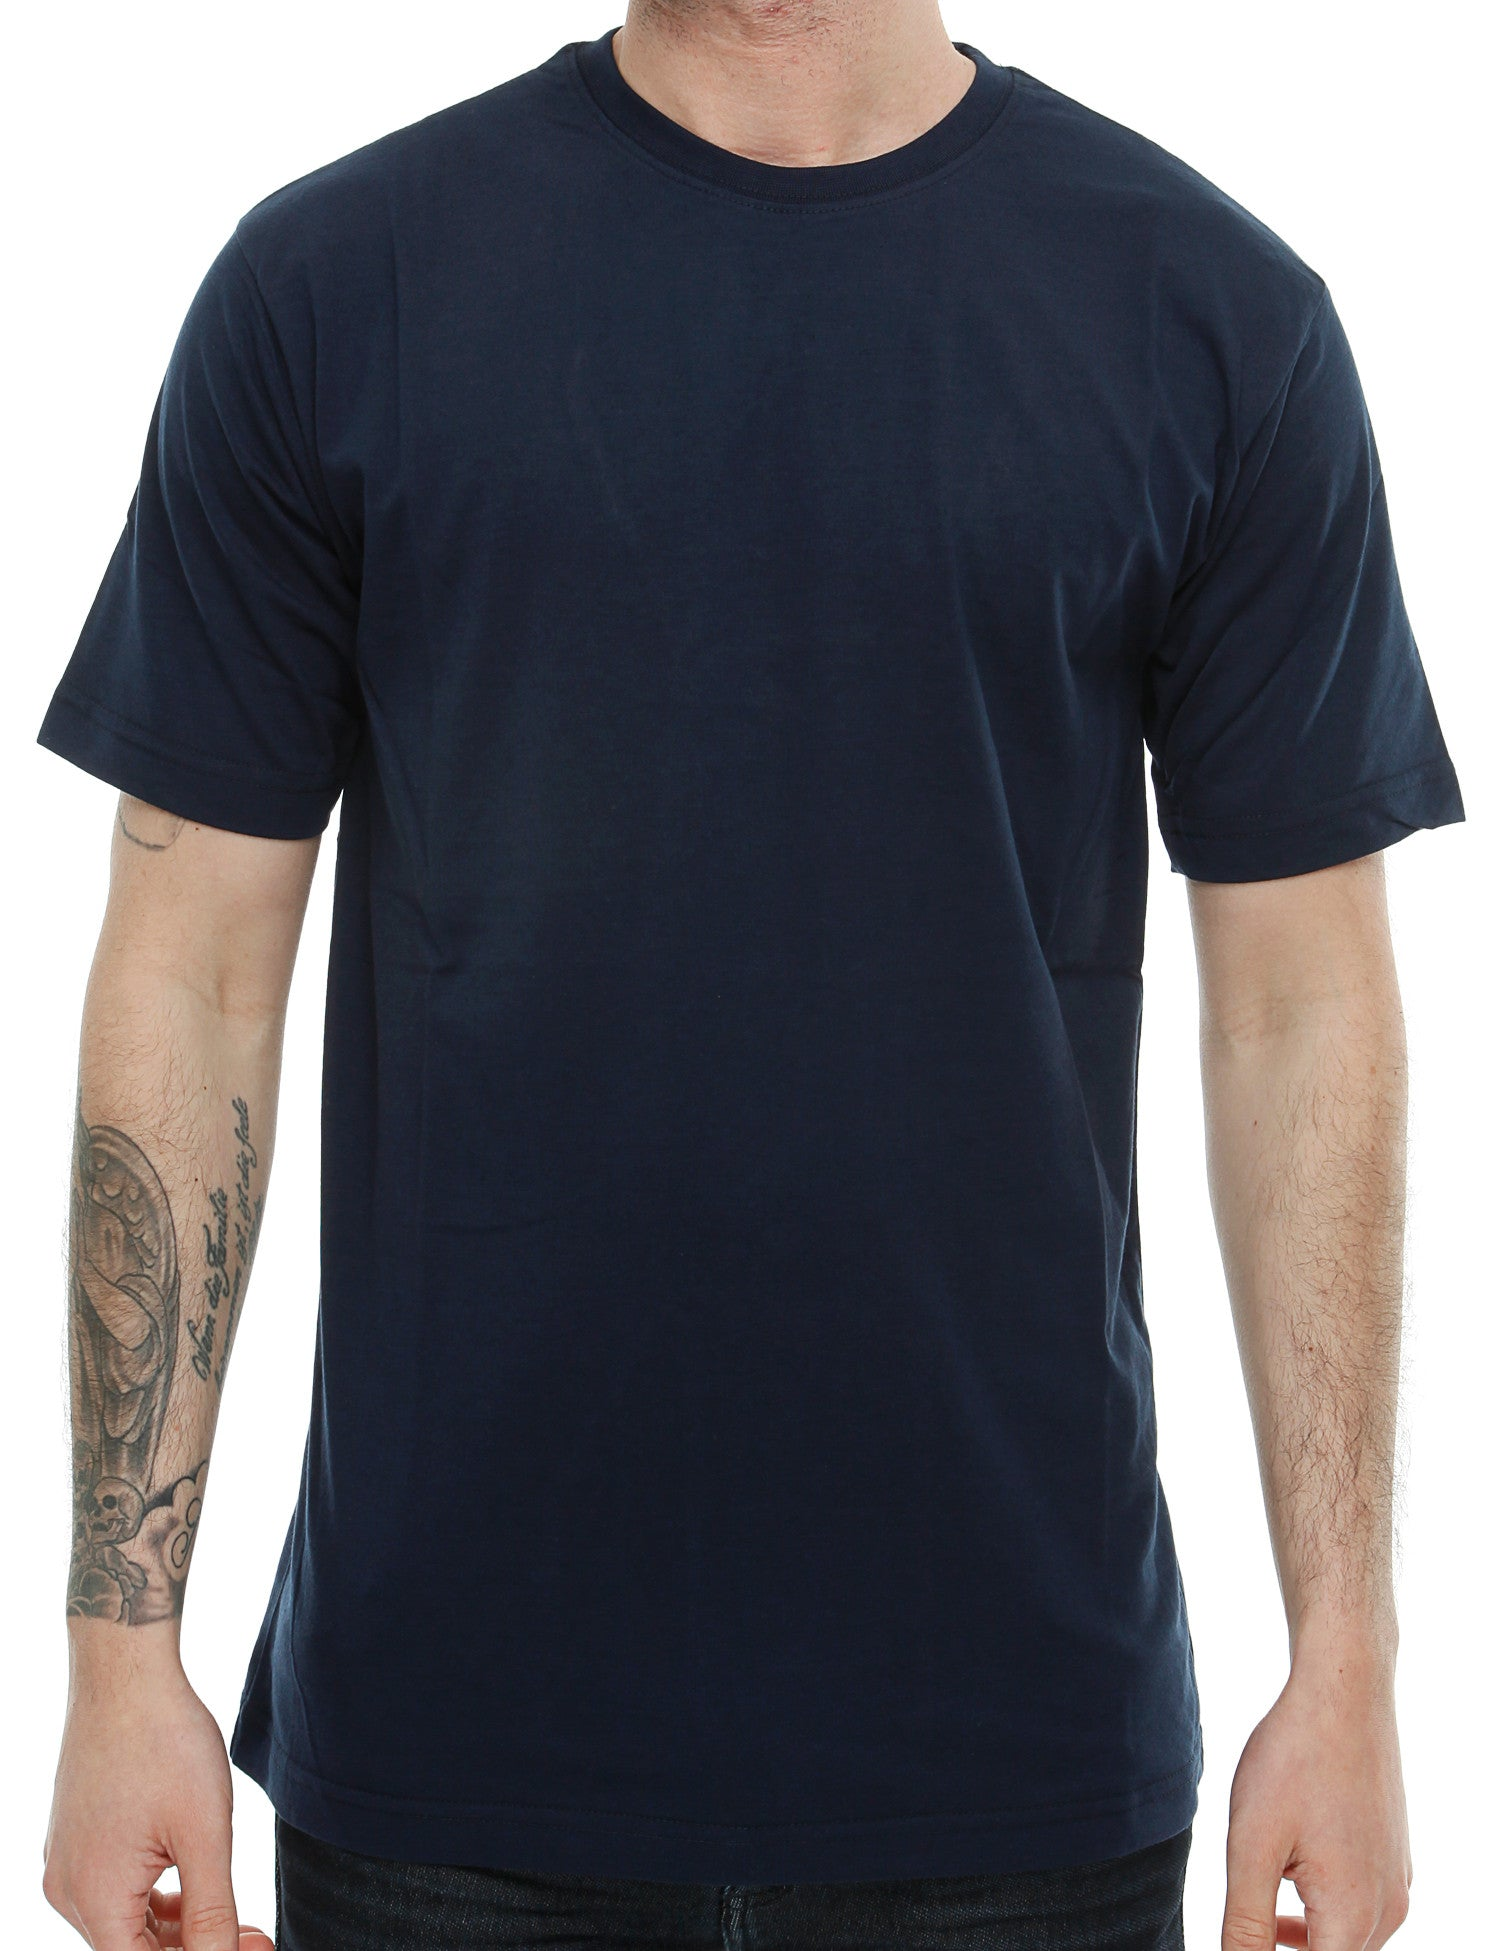 Raw Blue Solid Basic T-Shirt RB16-013 Navy